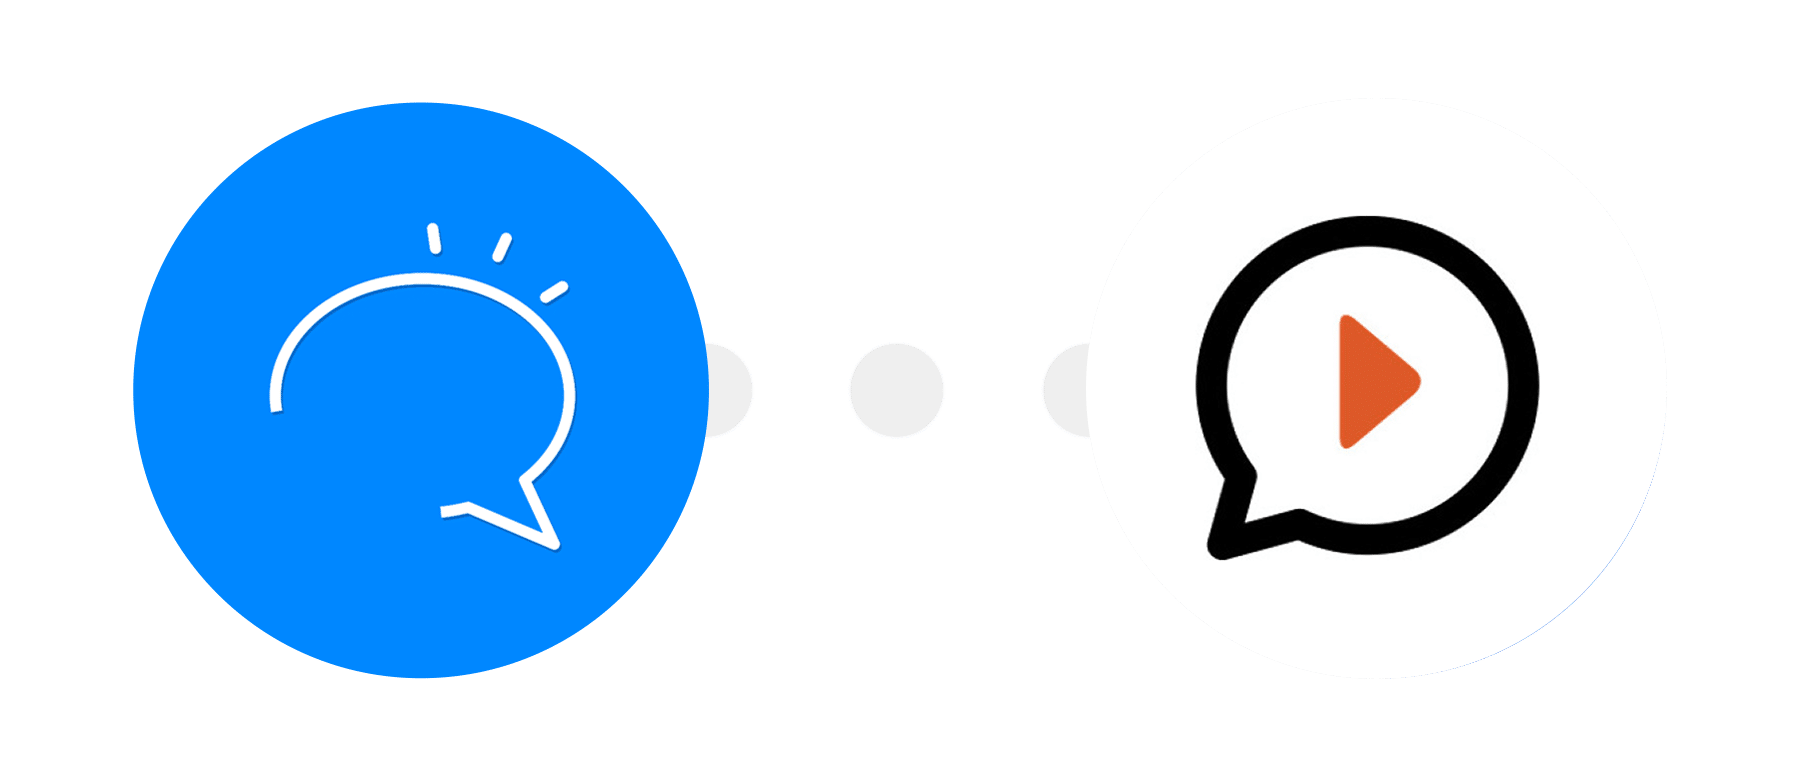 Wowing integrates with Clever Messenger